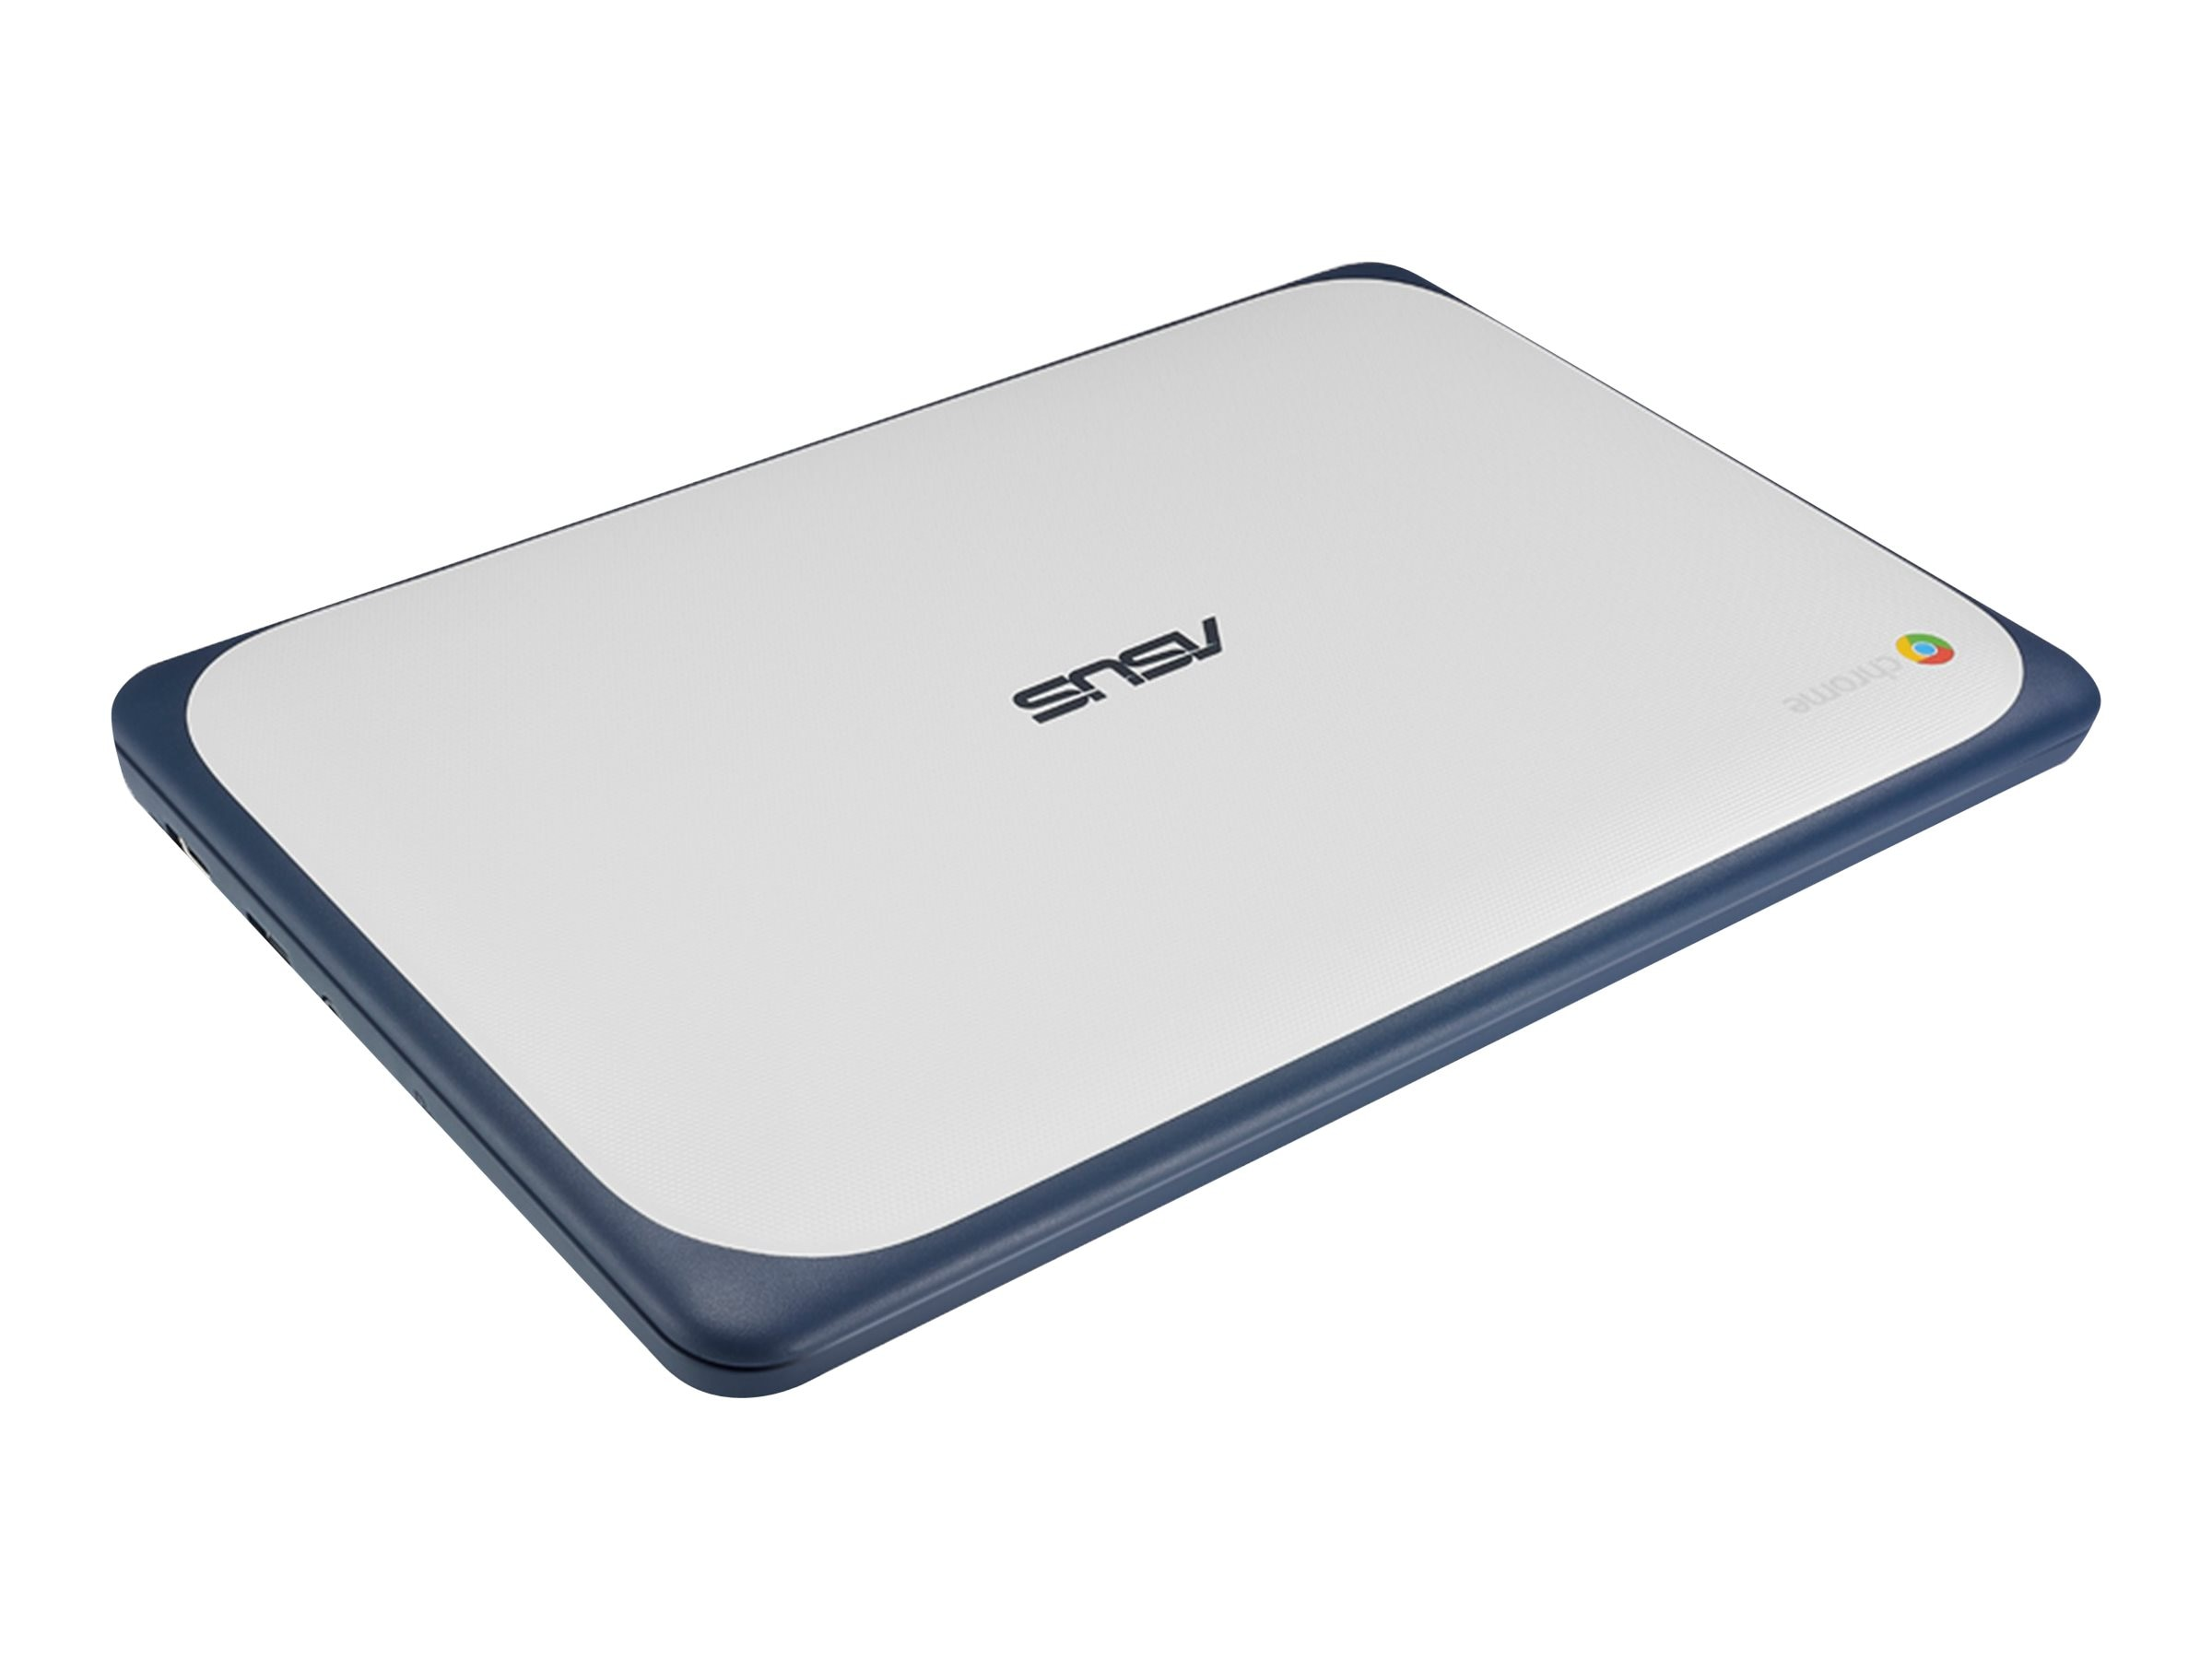 Asus Notebook PC Celeron N3060 4GB 16GB 11.6 W10